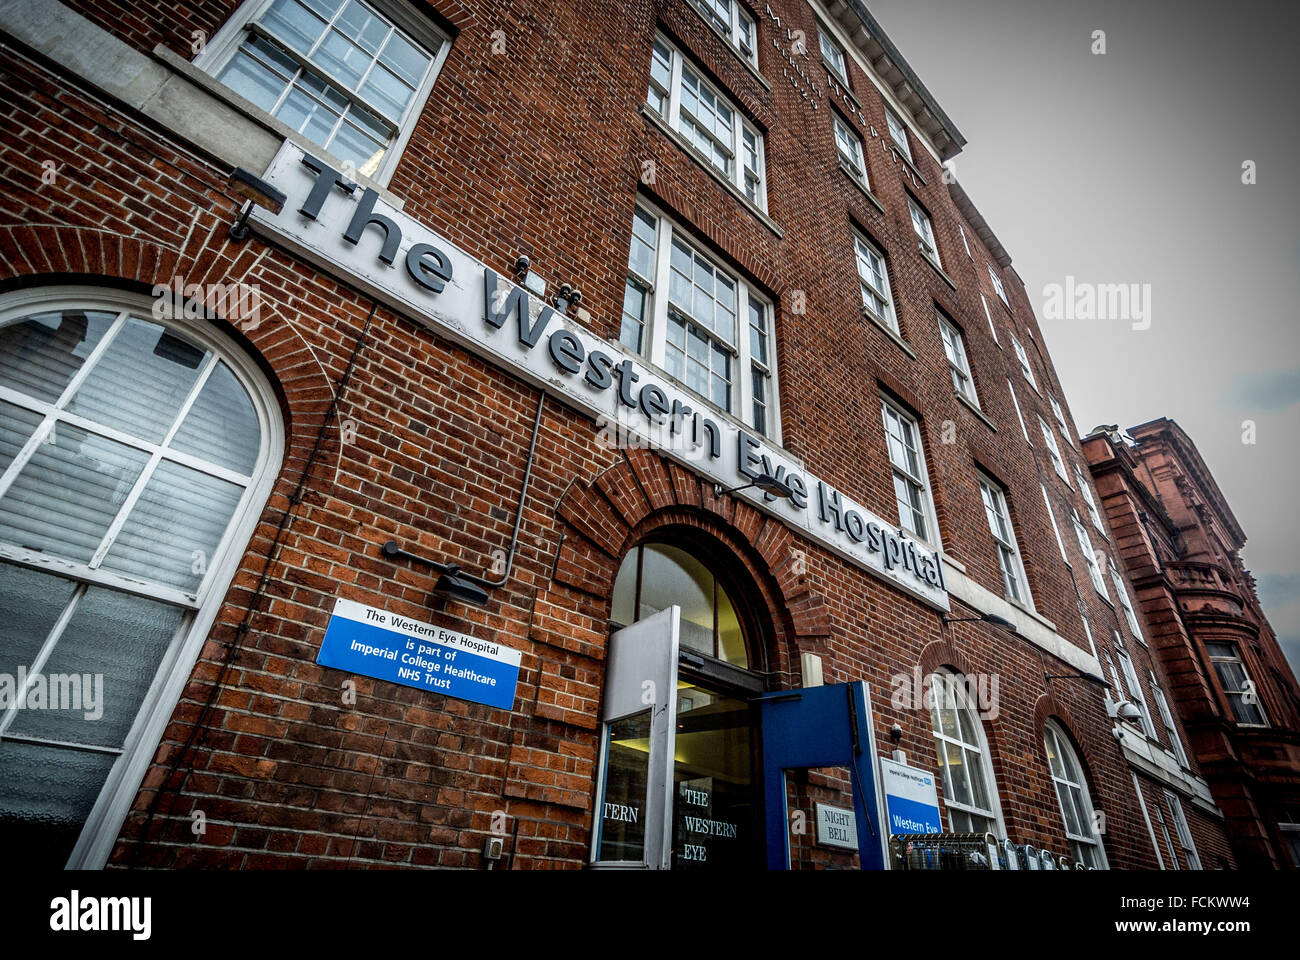 Die westlichen Eye Hospital, London, UK. Stockbild